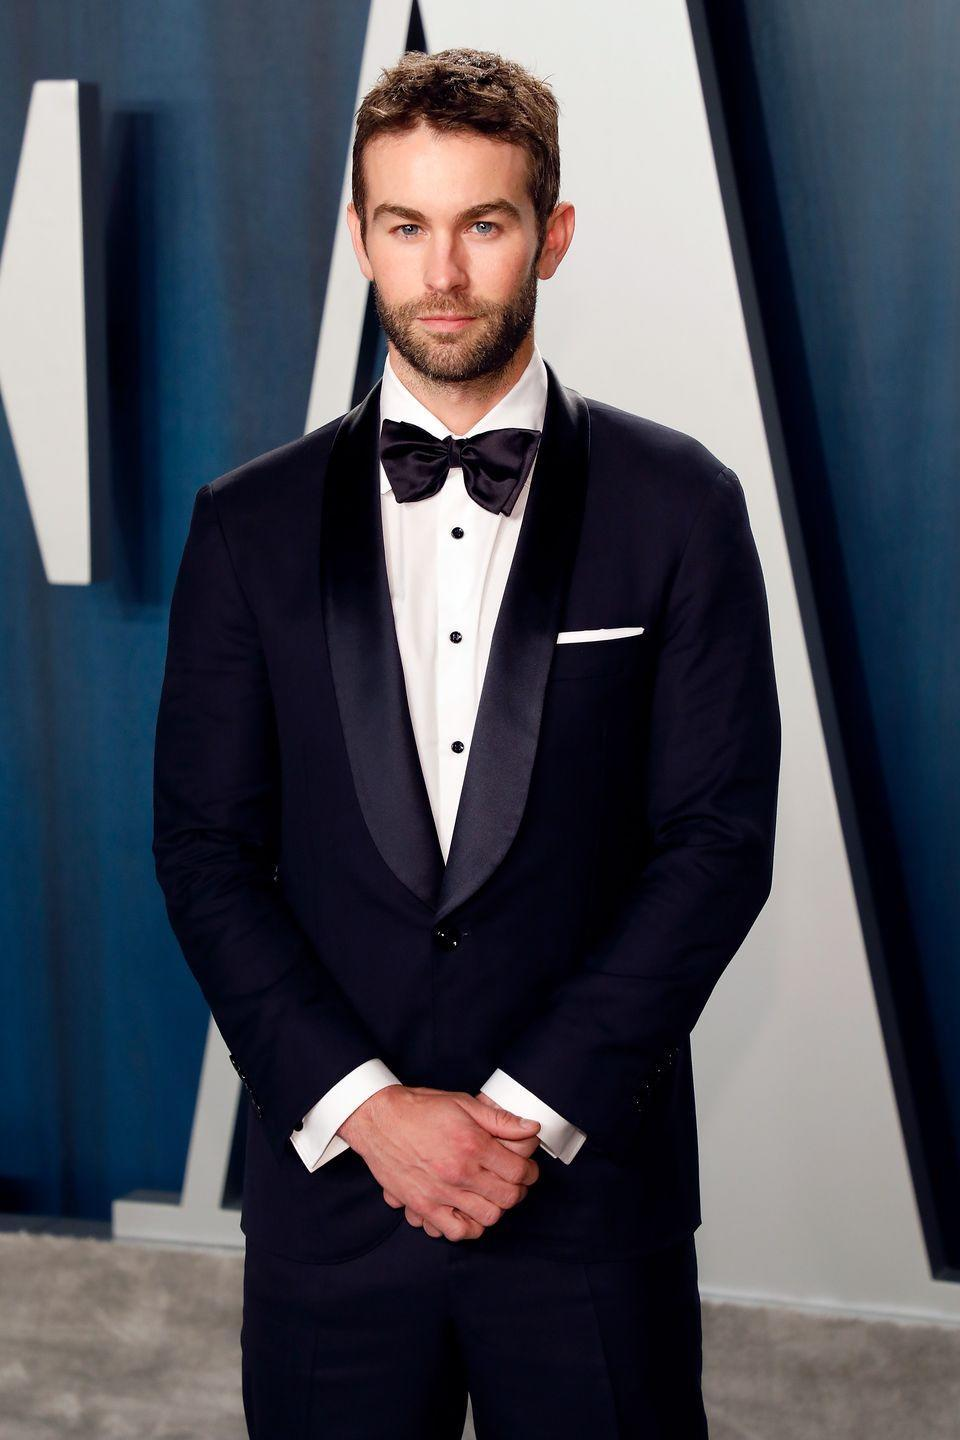 """<p>Nowadays, Chace is still out there acting. He's starred in a bunch of different shows like <em>Blood & Oil</em>, <em>Casual</em>, and <em>The Boys.</em> (Yes, <a href=""""https://www.womenshealthmag.com/life/a28721080/chace-crawford-the-boys-calendar-bodysuit/"""" rel=""""nofollow noopener"""" target=""""_blank"""" data-ylk=""""slk:that was all of him on the infamous Boys poster."""" class=""""link rapid-noclick-resp"""">that was all of him on the infamous <em>Boys </em>poster.</a>) He appeared in the 2020 thriller <em>Inheritance </em>alongside Lily Collins. You can spot him in the upcoming movie <em>Riptide</em> next.</p>"""